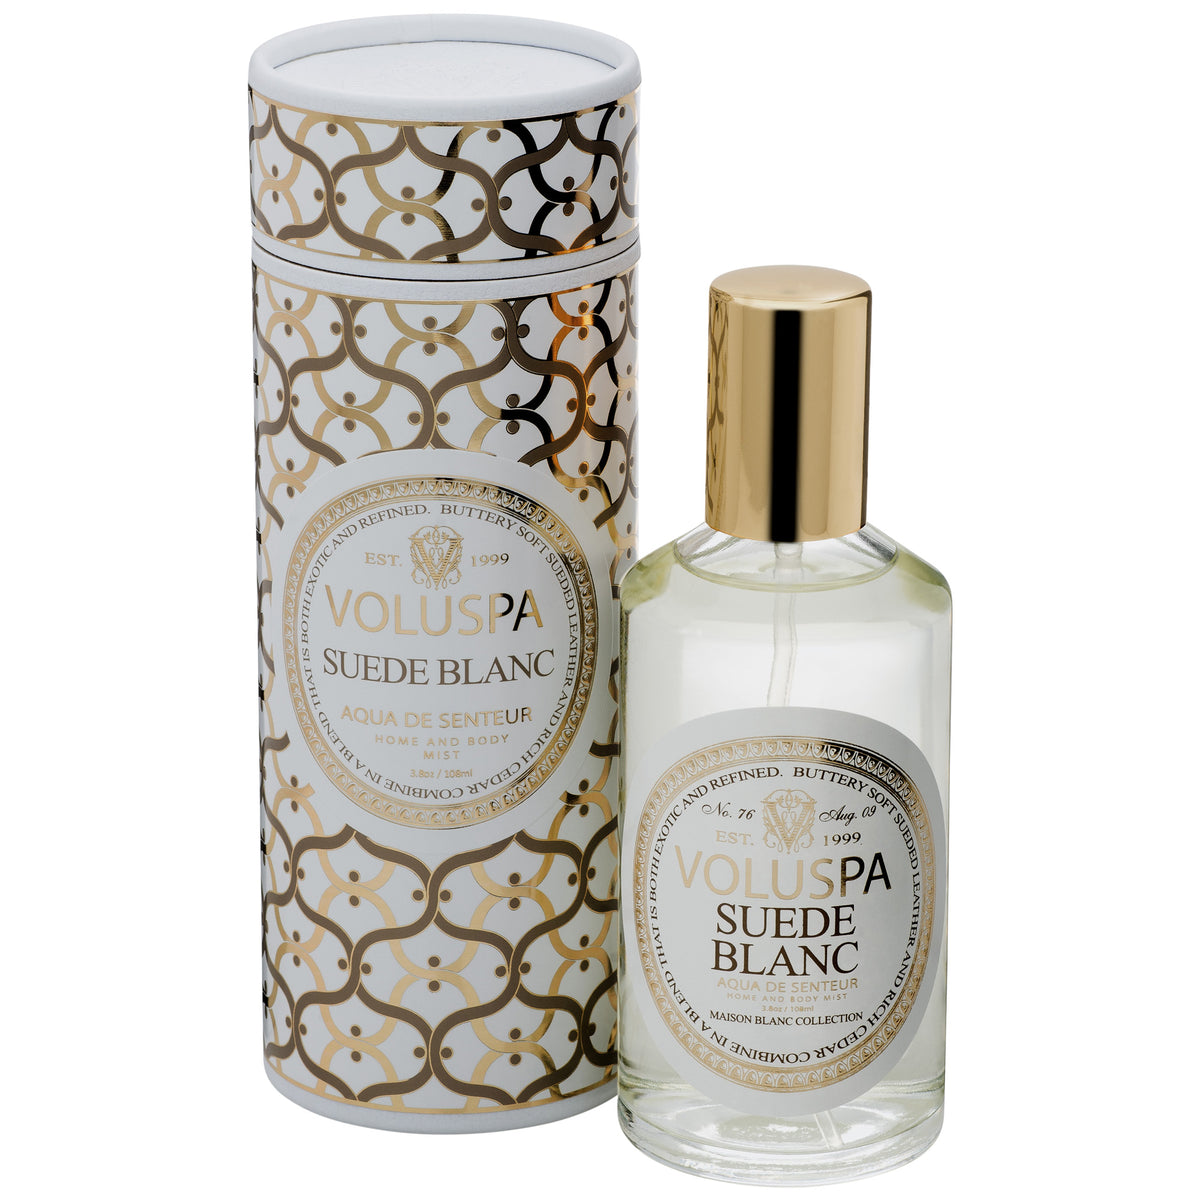 Suede Blanc - Room & Body Spray - 2